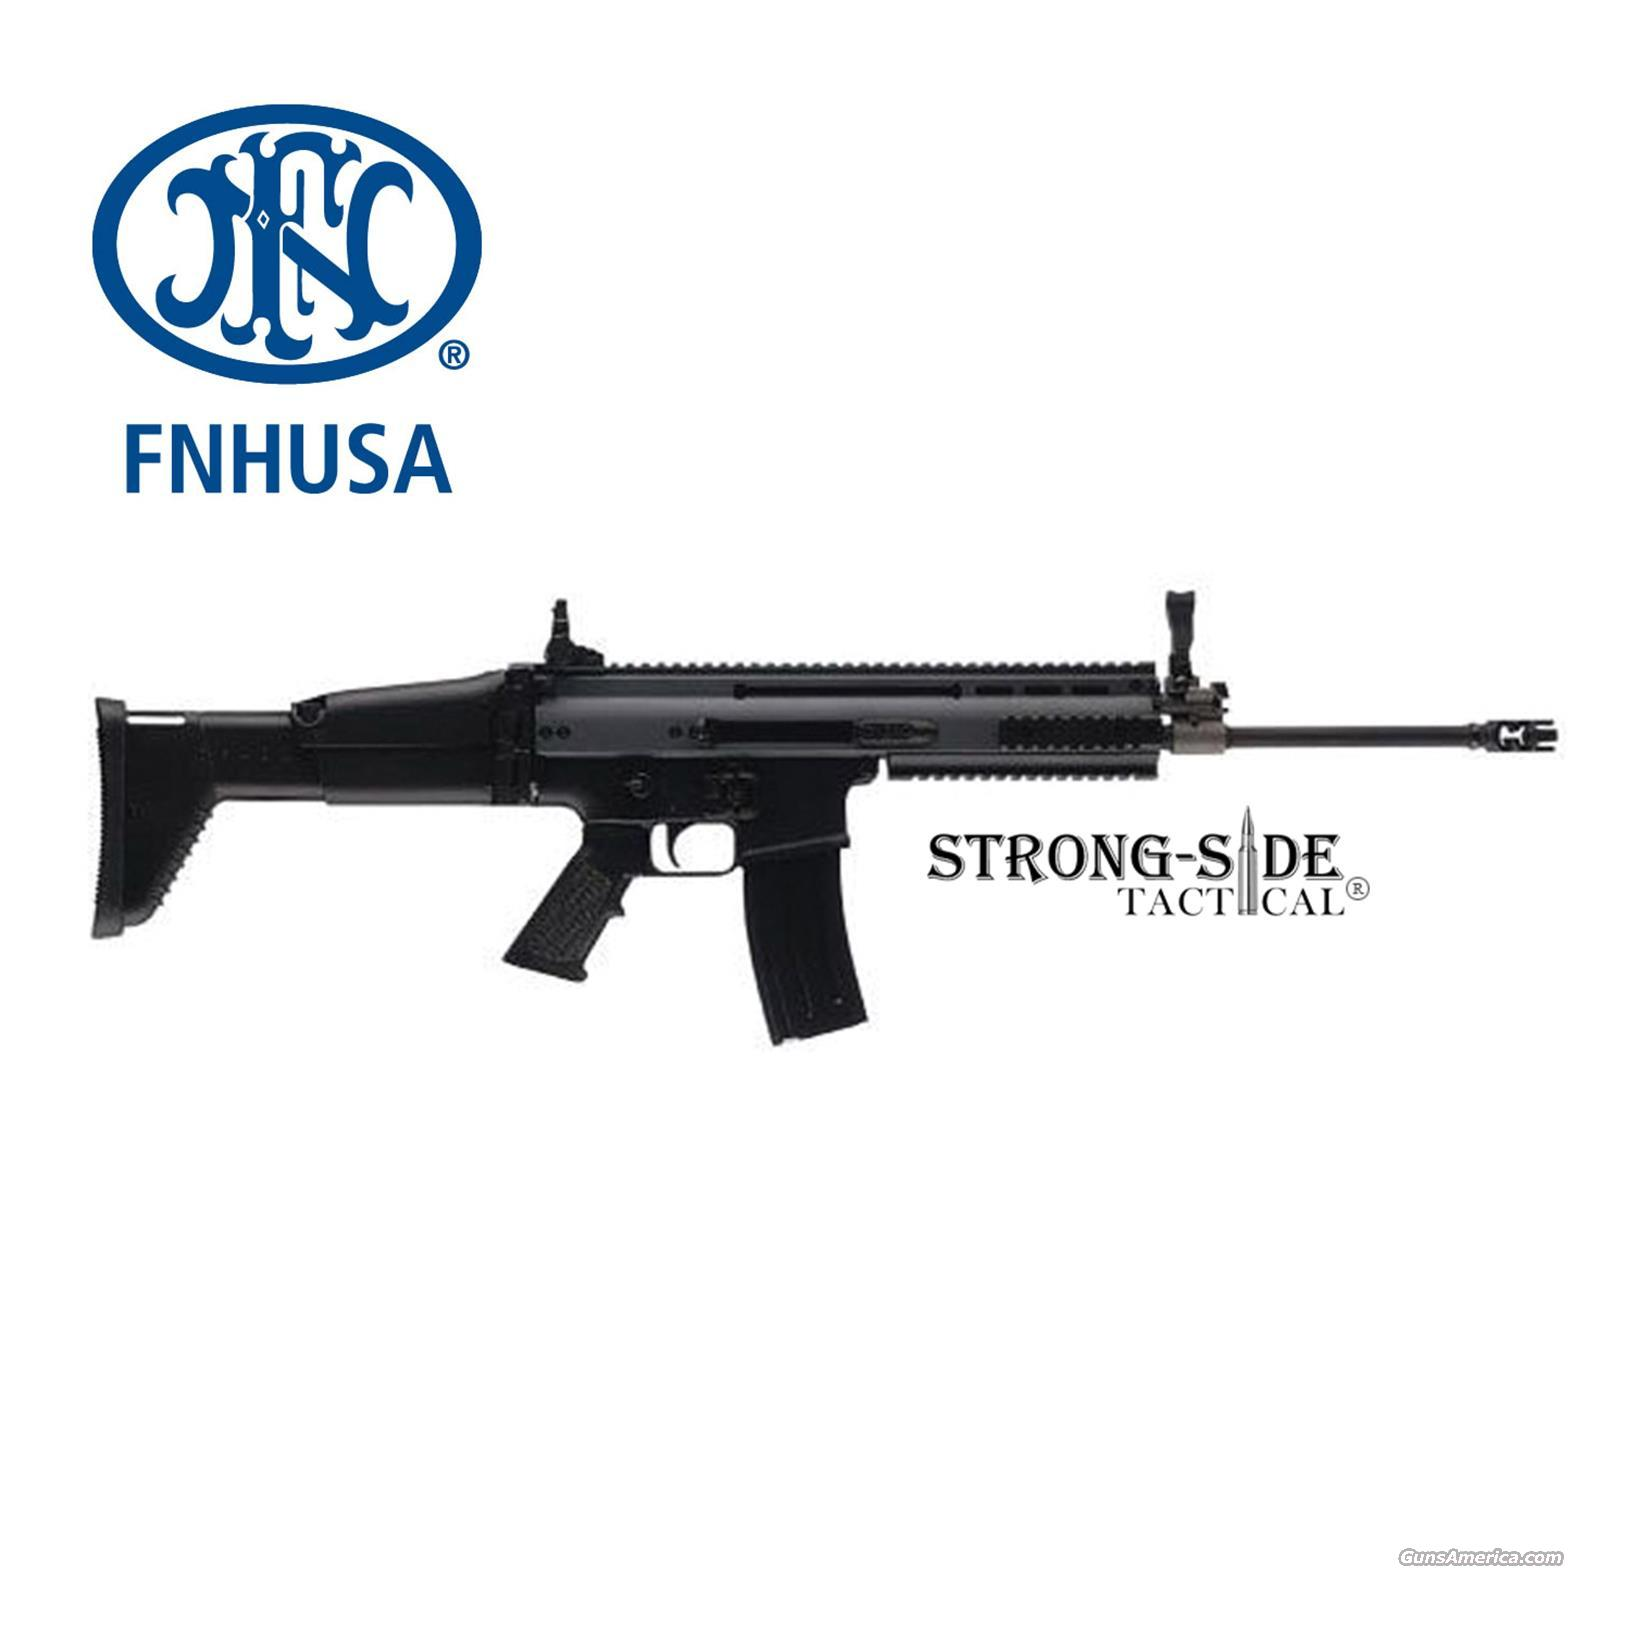 FNH USA SCAR 16S (BLK) 5.56mm / .223 (SHIPS FREE, NO CC FEES)  Guns > Rifles > FNH - Fabrique Nationale (FN) Rifles > Semi-auto > Other